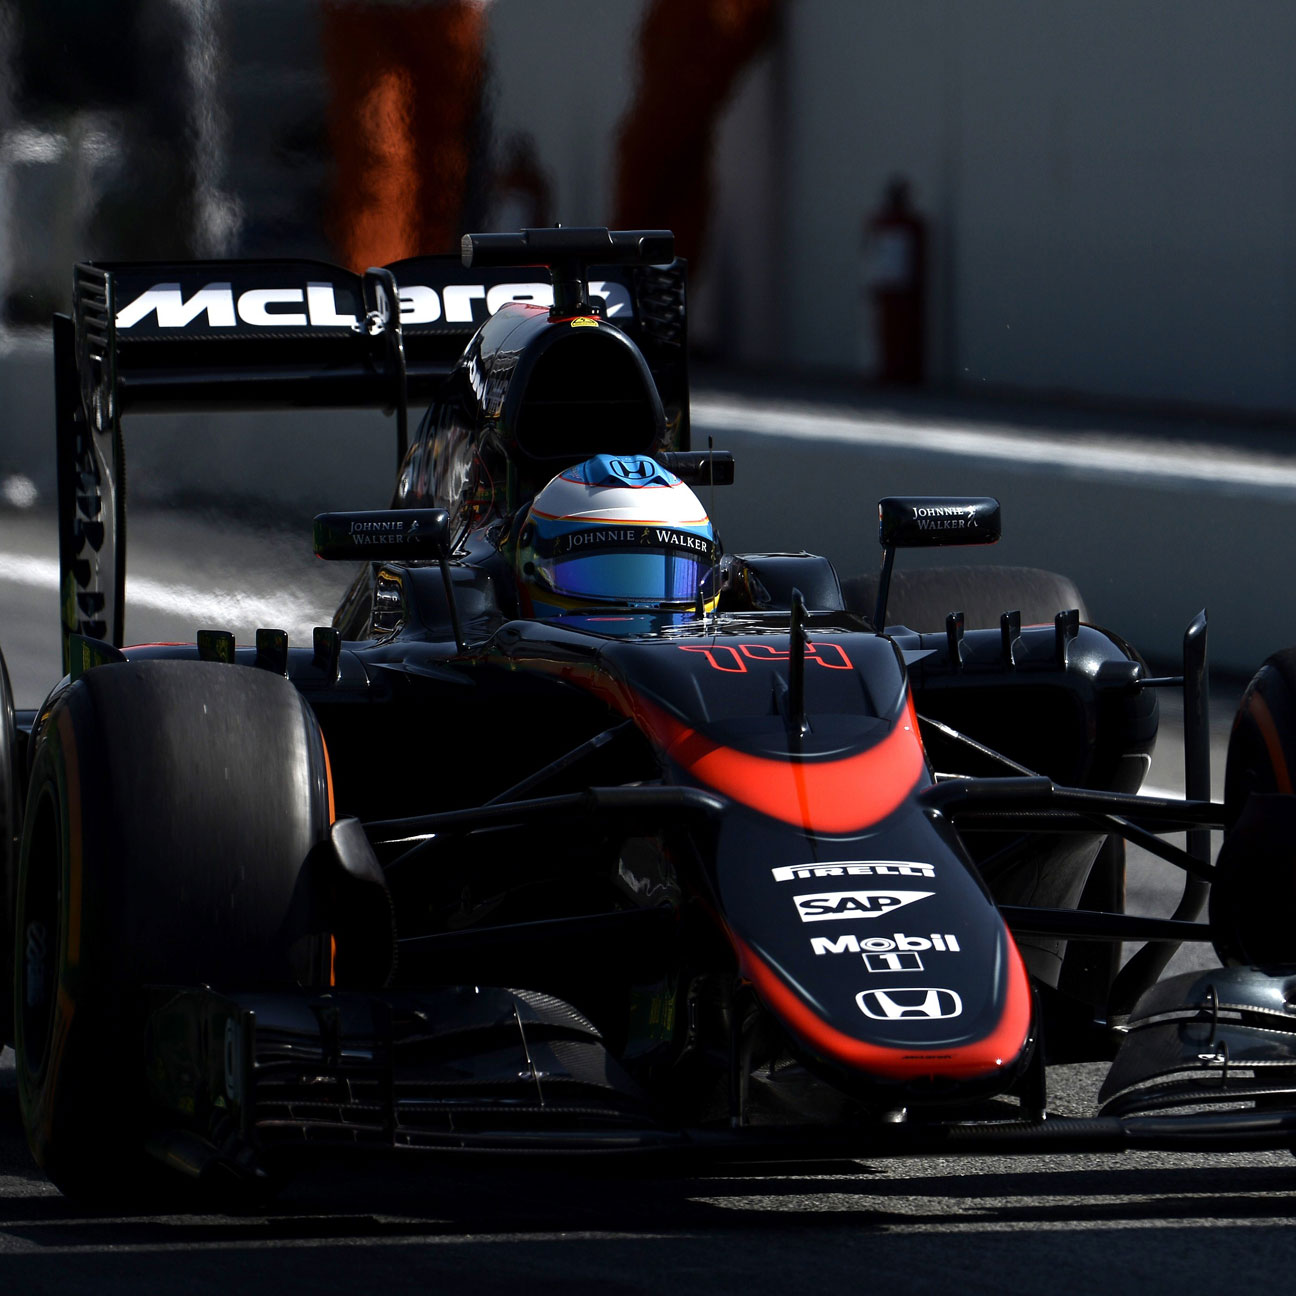 Tear-off visor likely cause of Alonso's brake failure